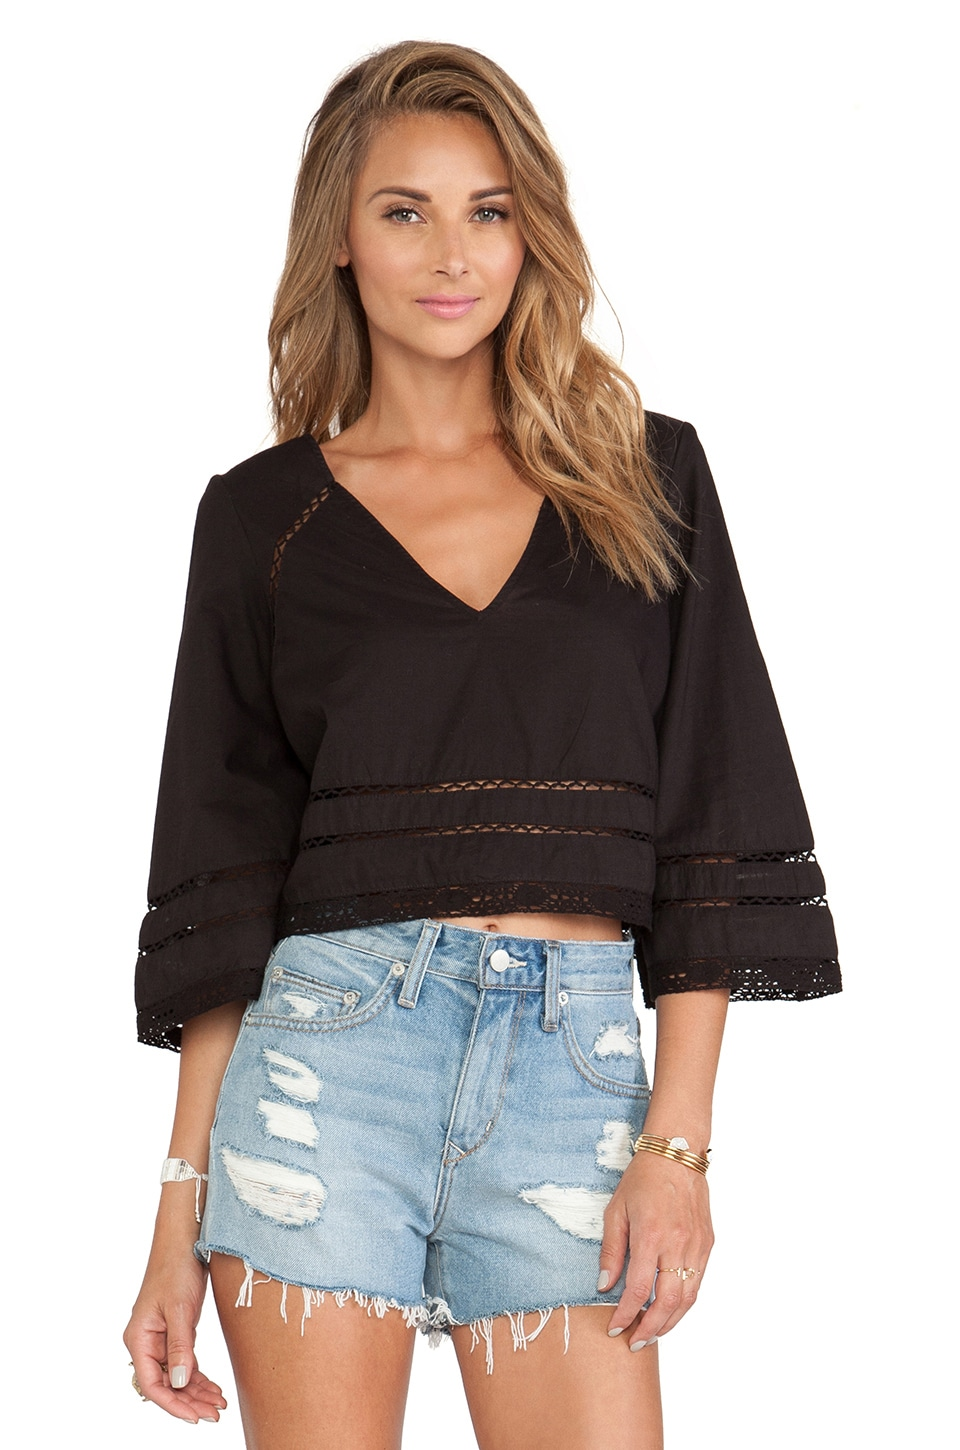 Tularosa Samantha Top in Black